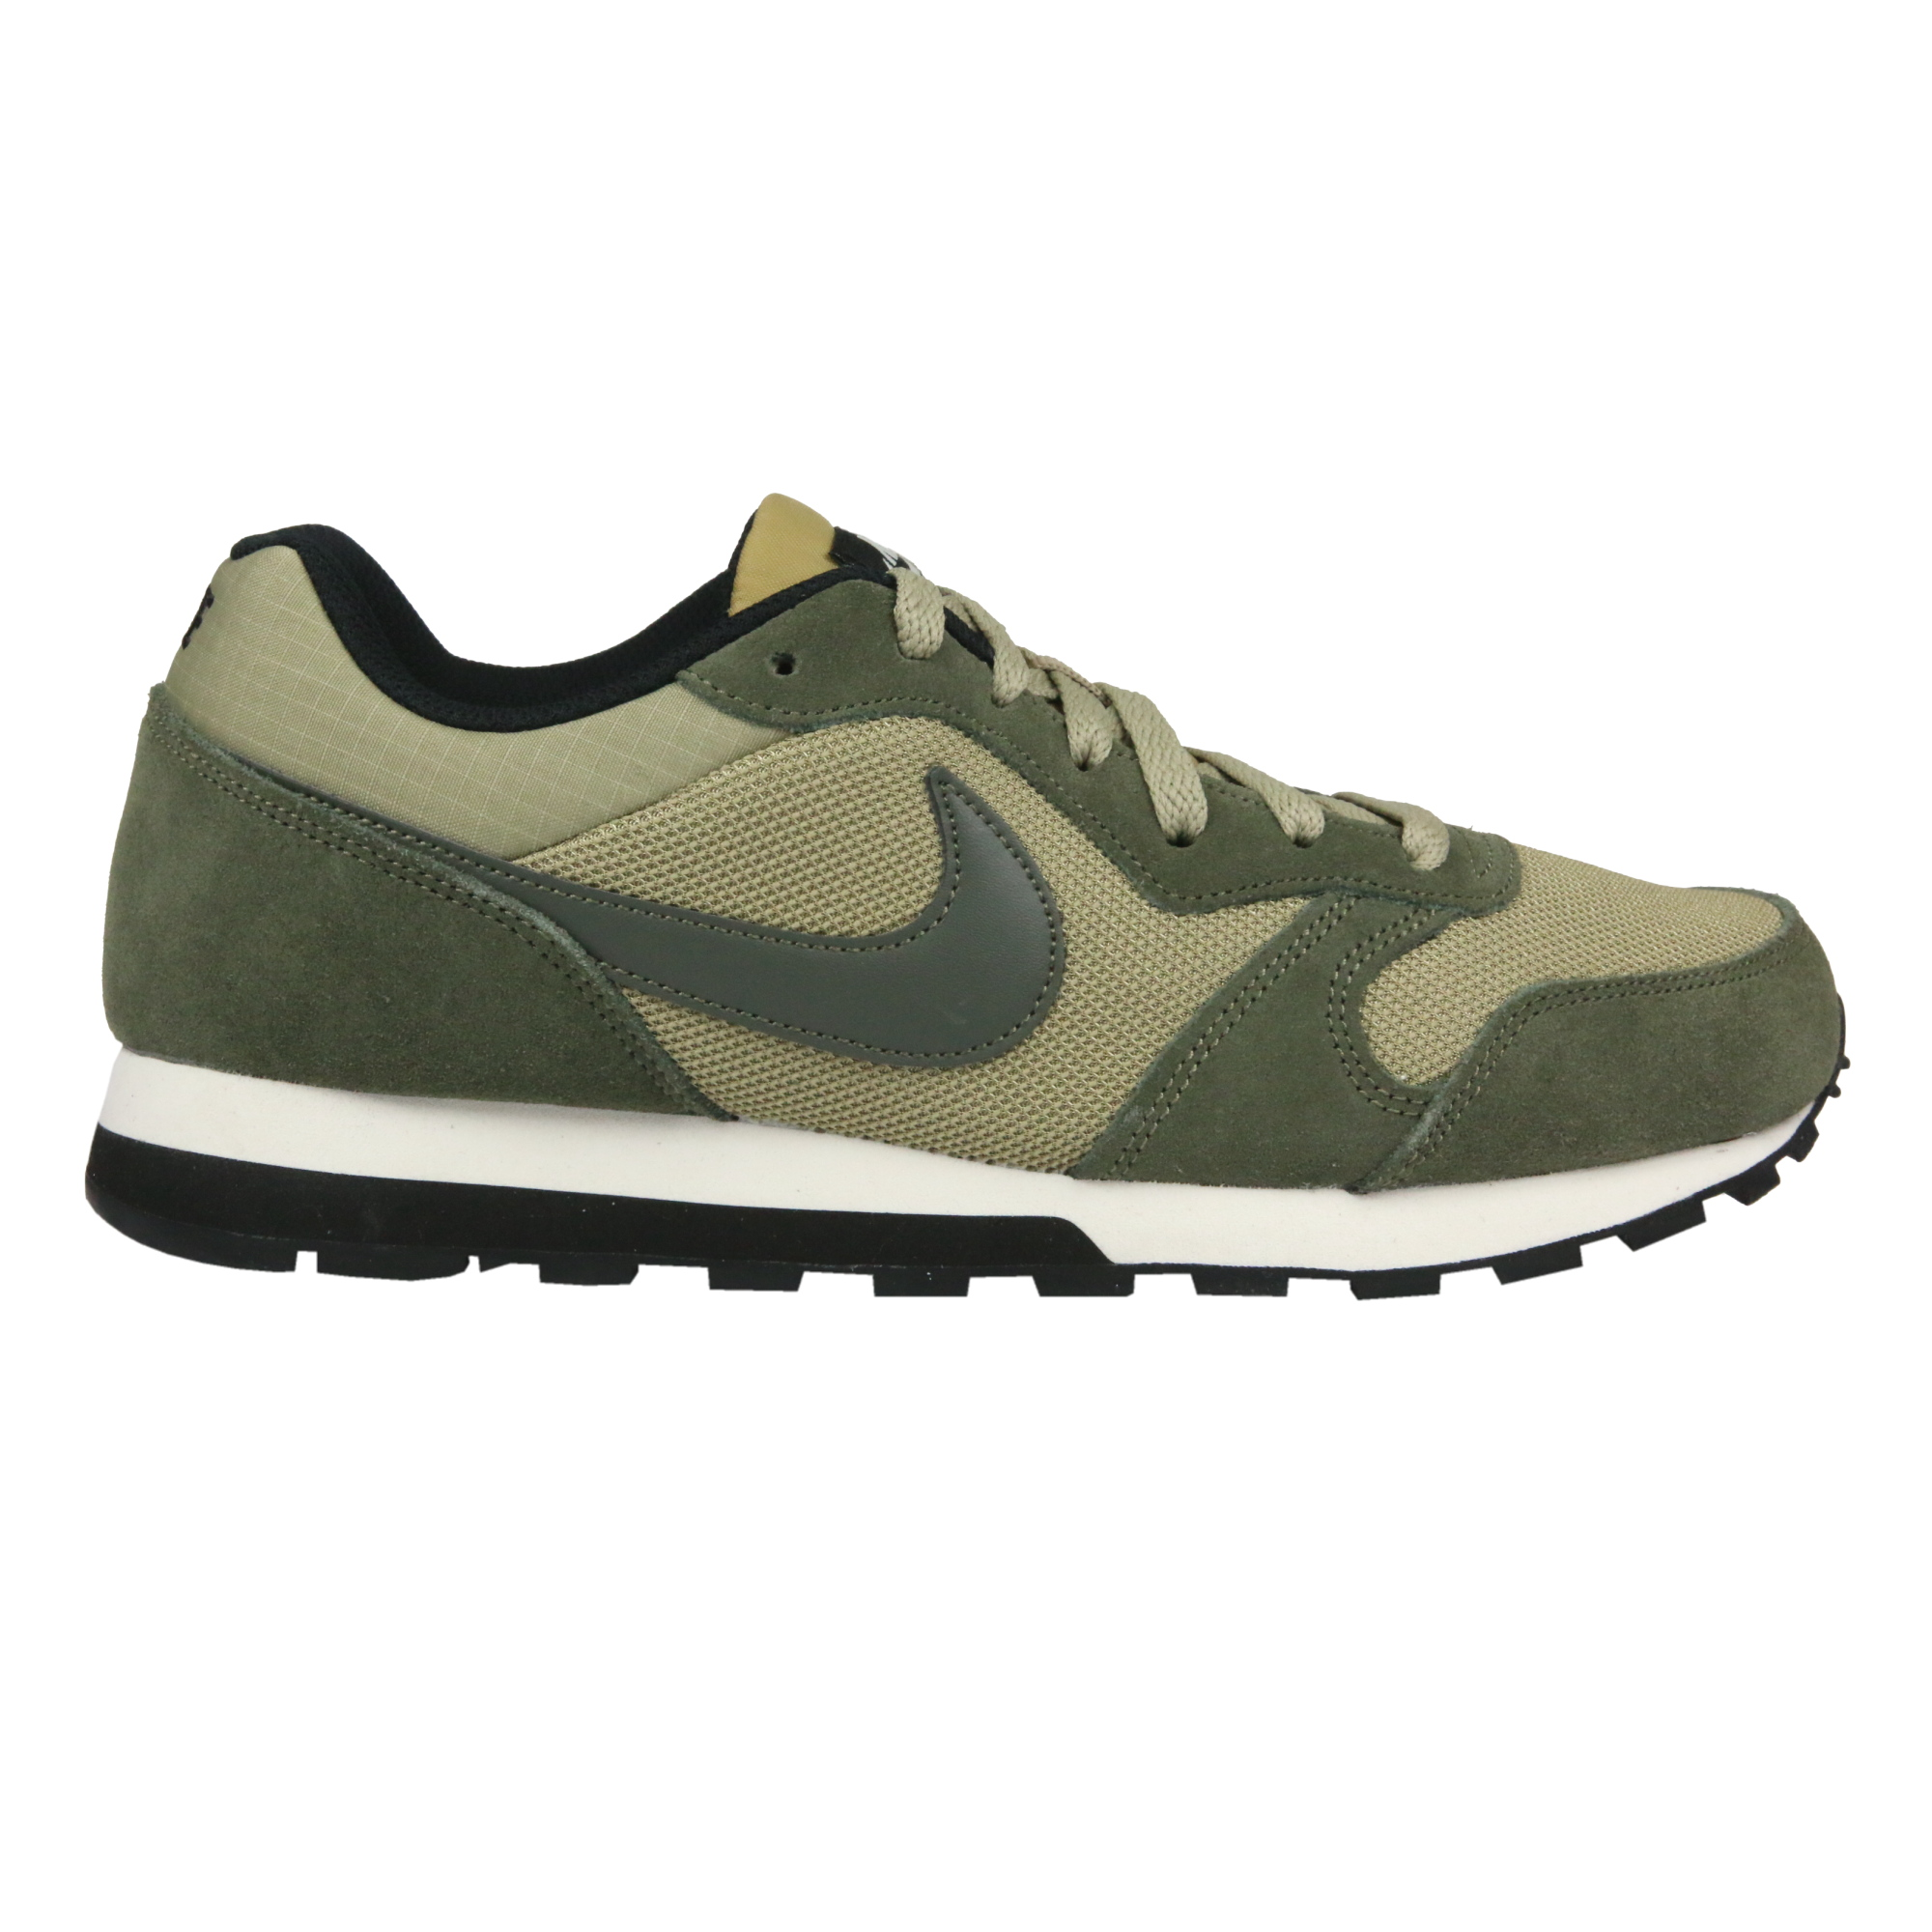 nike md runner 2 chaussures de sport sneaker hommes vert neutre olive 749794 220 ebay. Black Bedroom Furniture Sets. Home Design Ideas